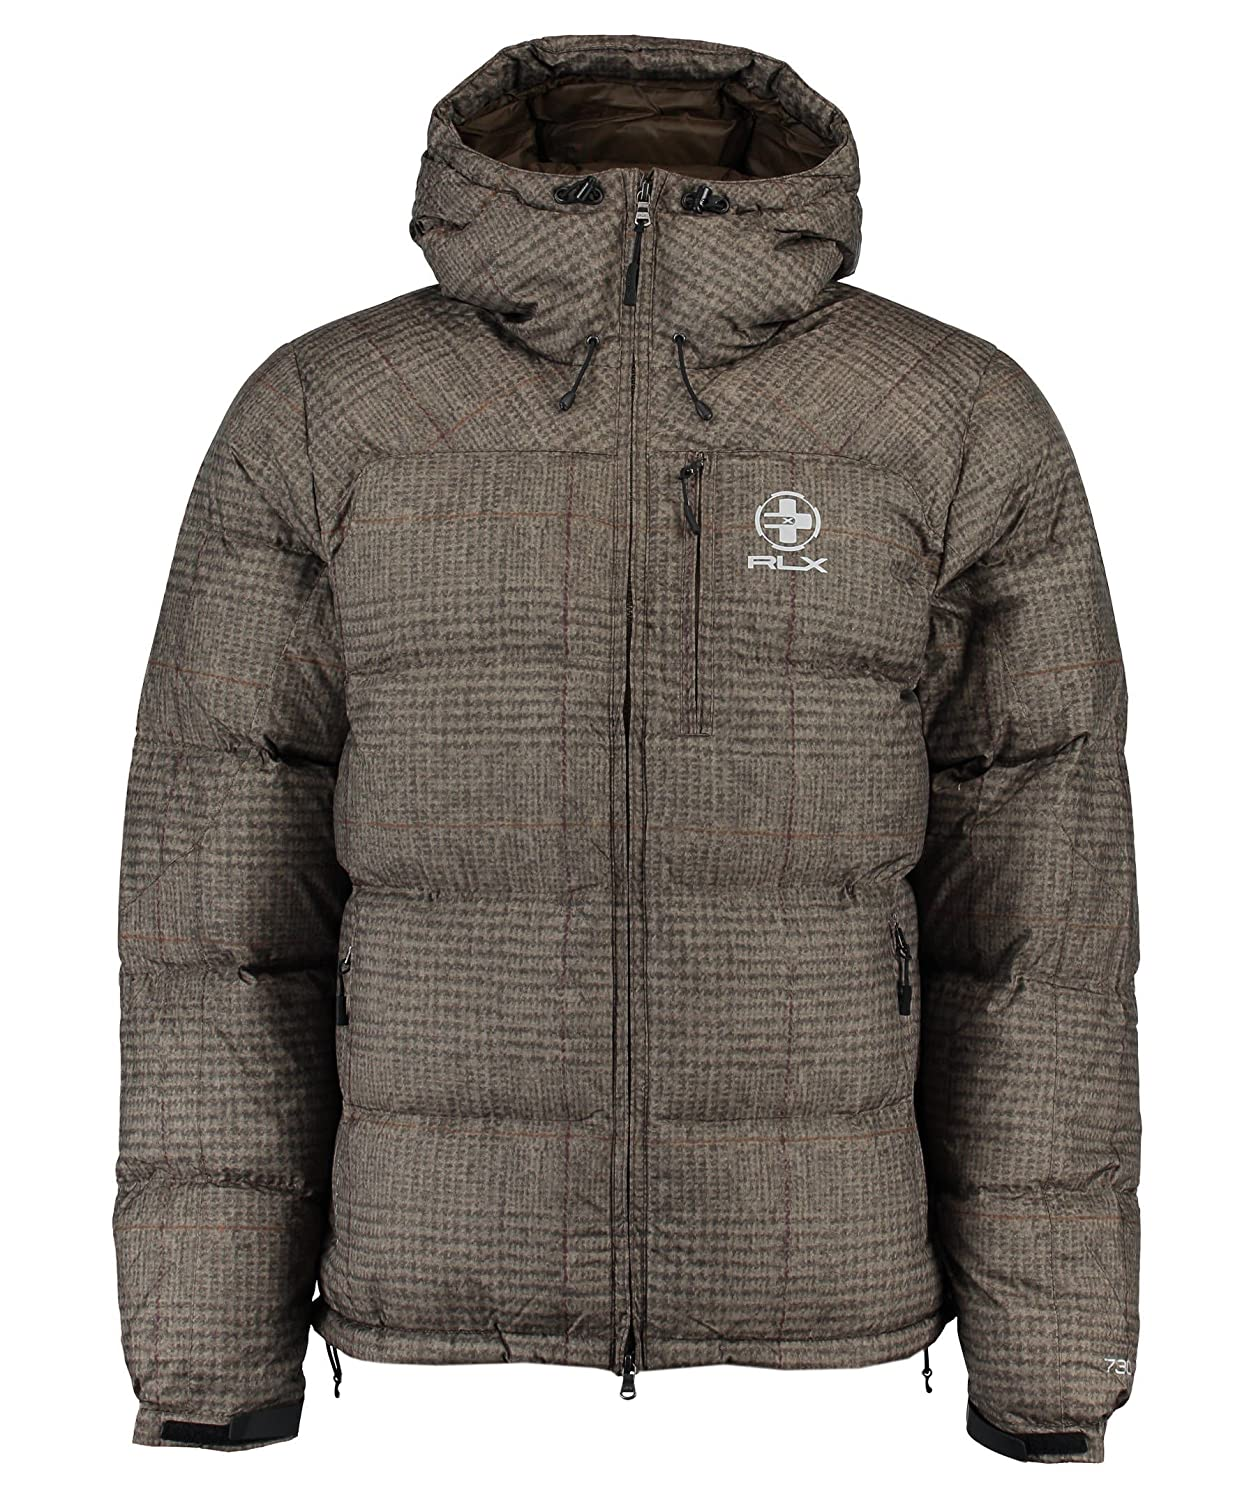 new product 6ee9e 5c27b RLX by Ralph Lauren Herren Daunenjacke - oliv - XL: Amazon ...